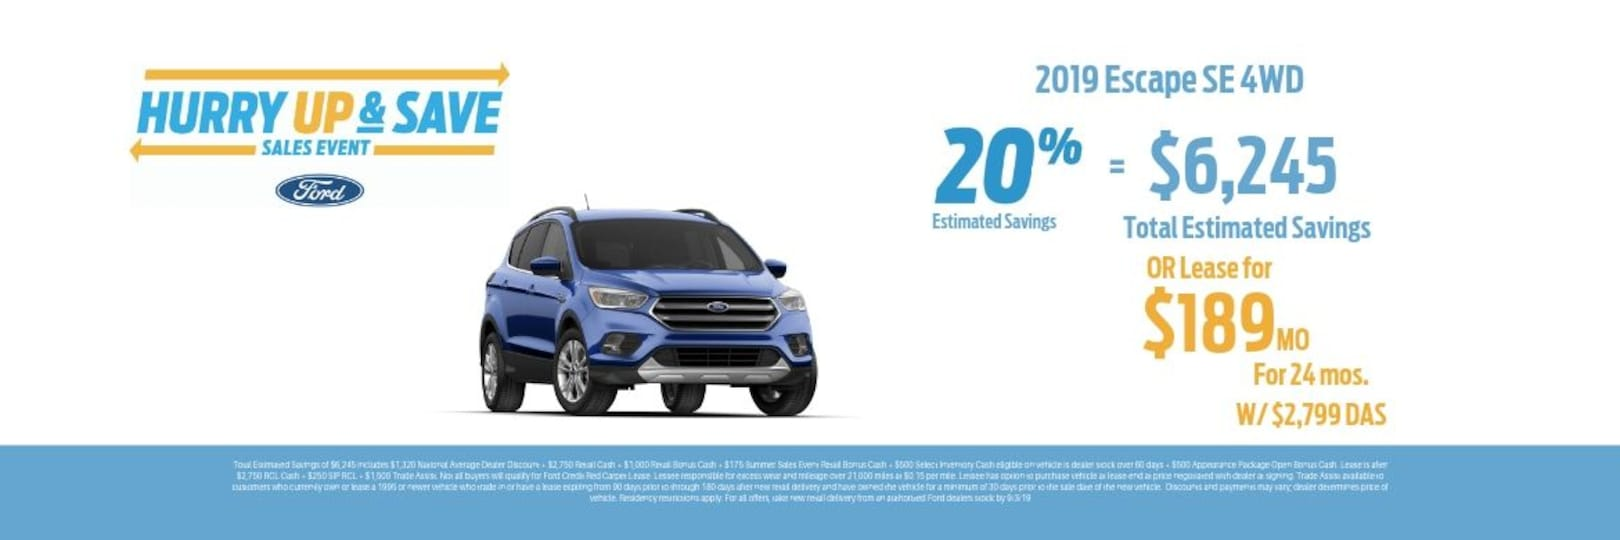 Chapman Ford Lancaster Pa >> ford dealer lancaster pa – Seven Modified 2019 Ford ...